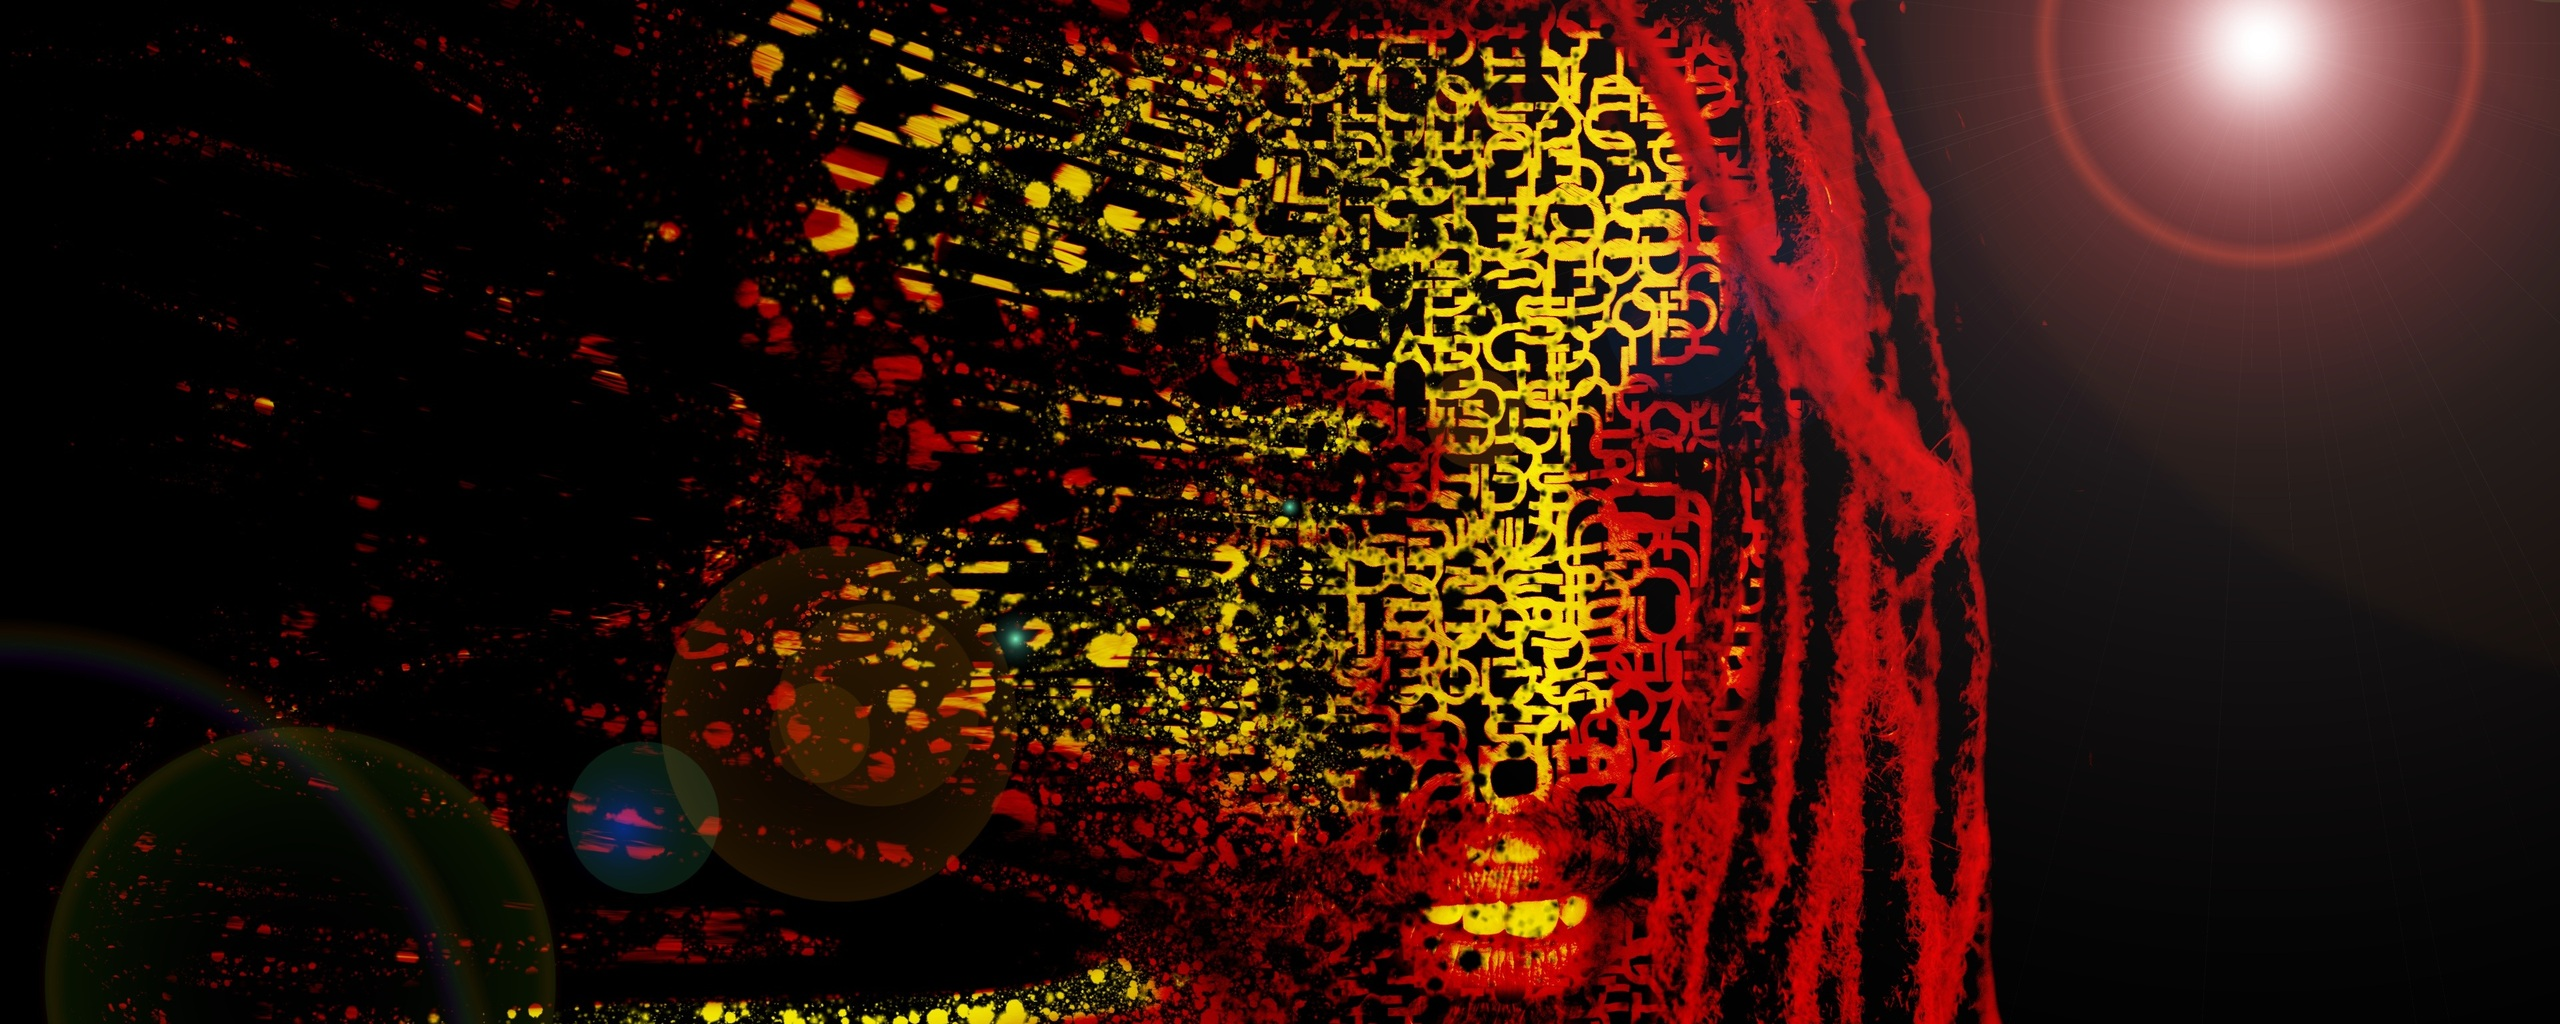 bob-marley-mask-abstract-artwork-4k-bb.jpg